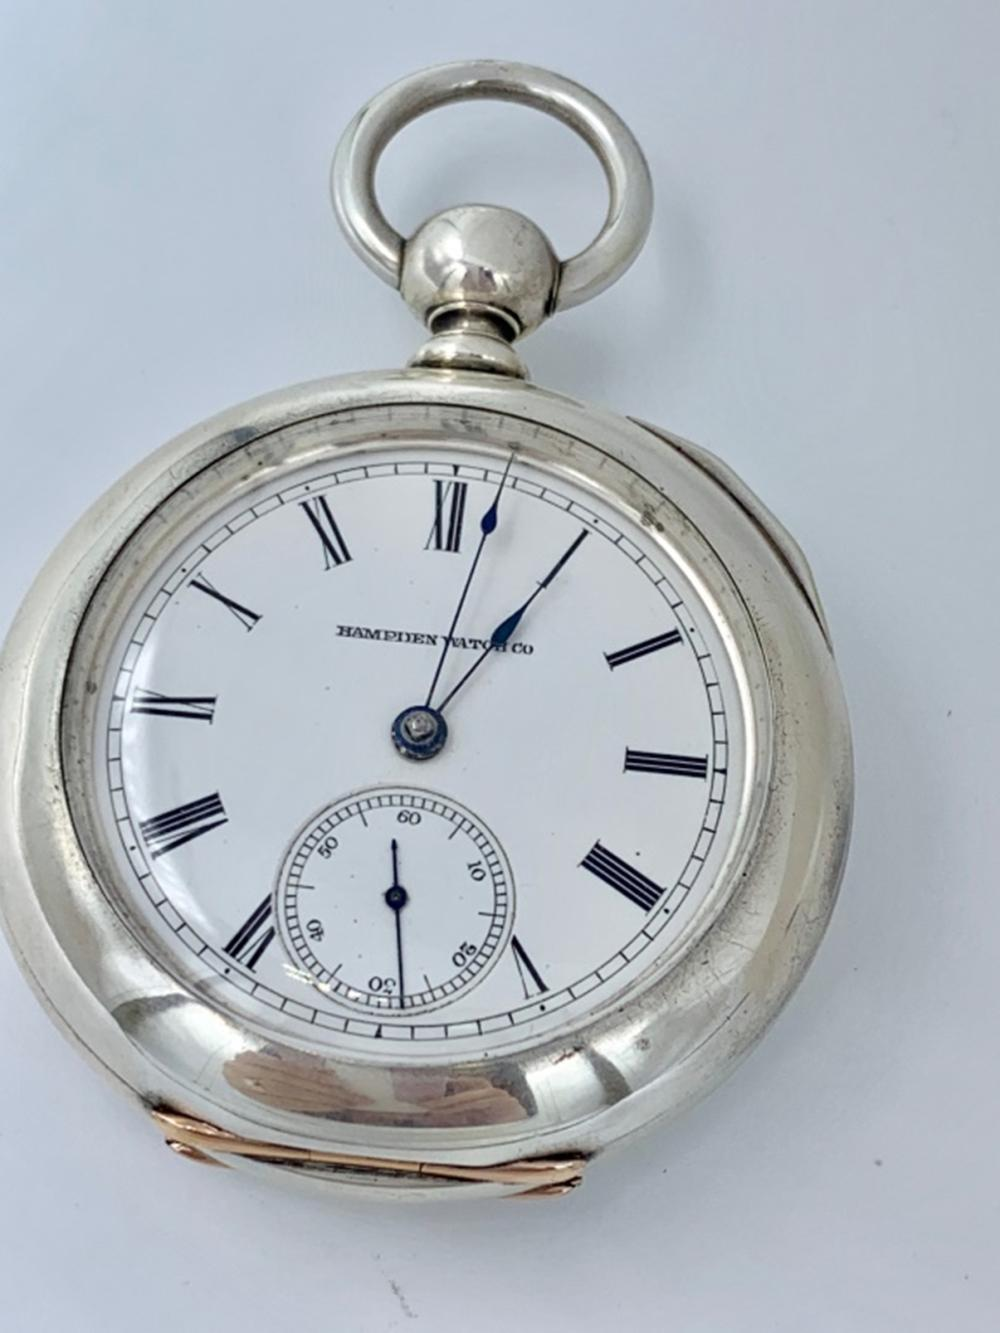 18 SIZE HAMPDEN WOOLWORTH OPEN FACE WATCH